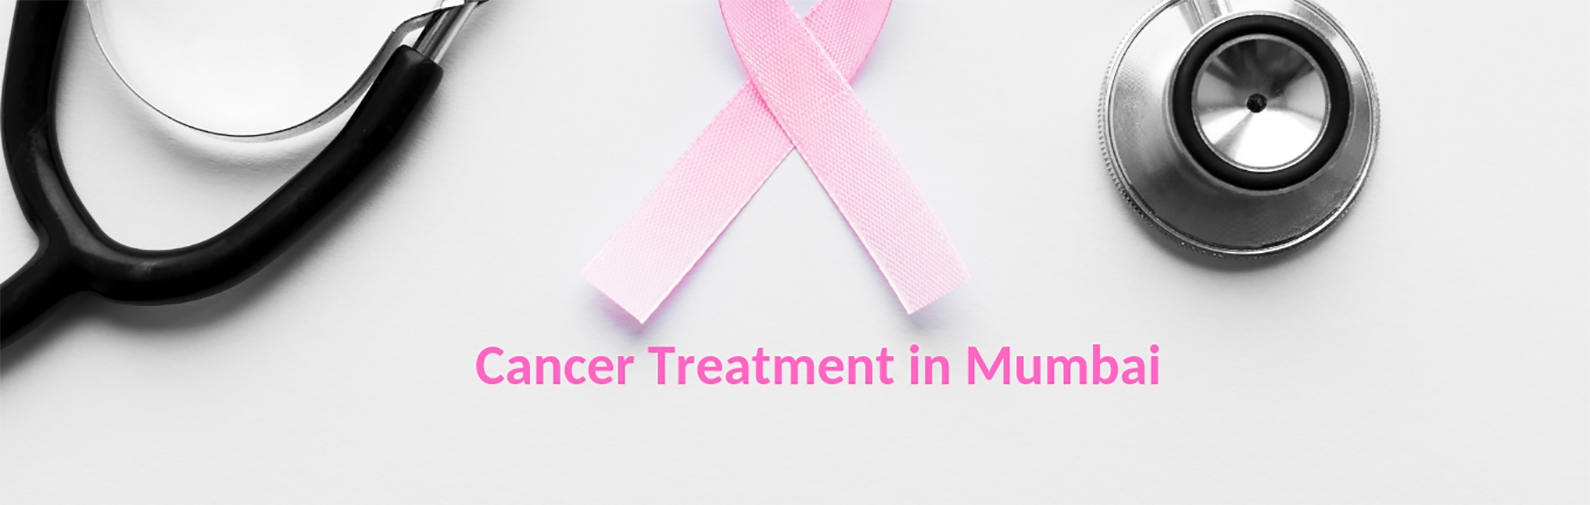 Cancer treatment in mumbai